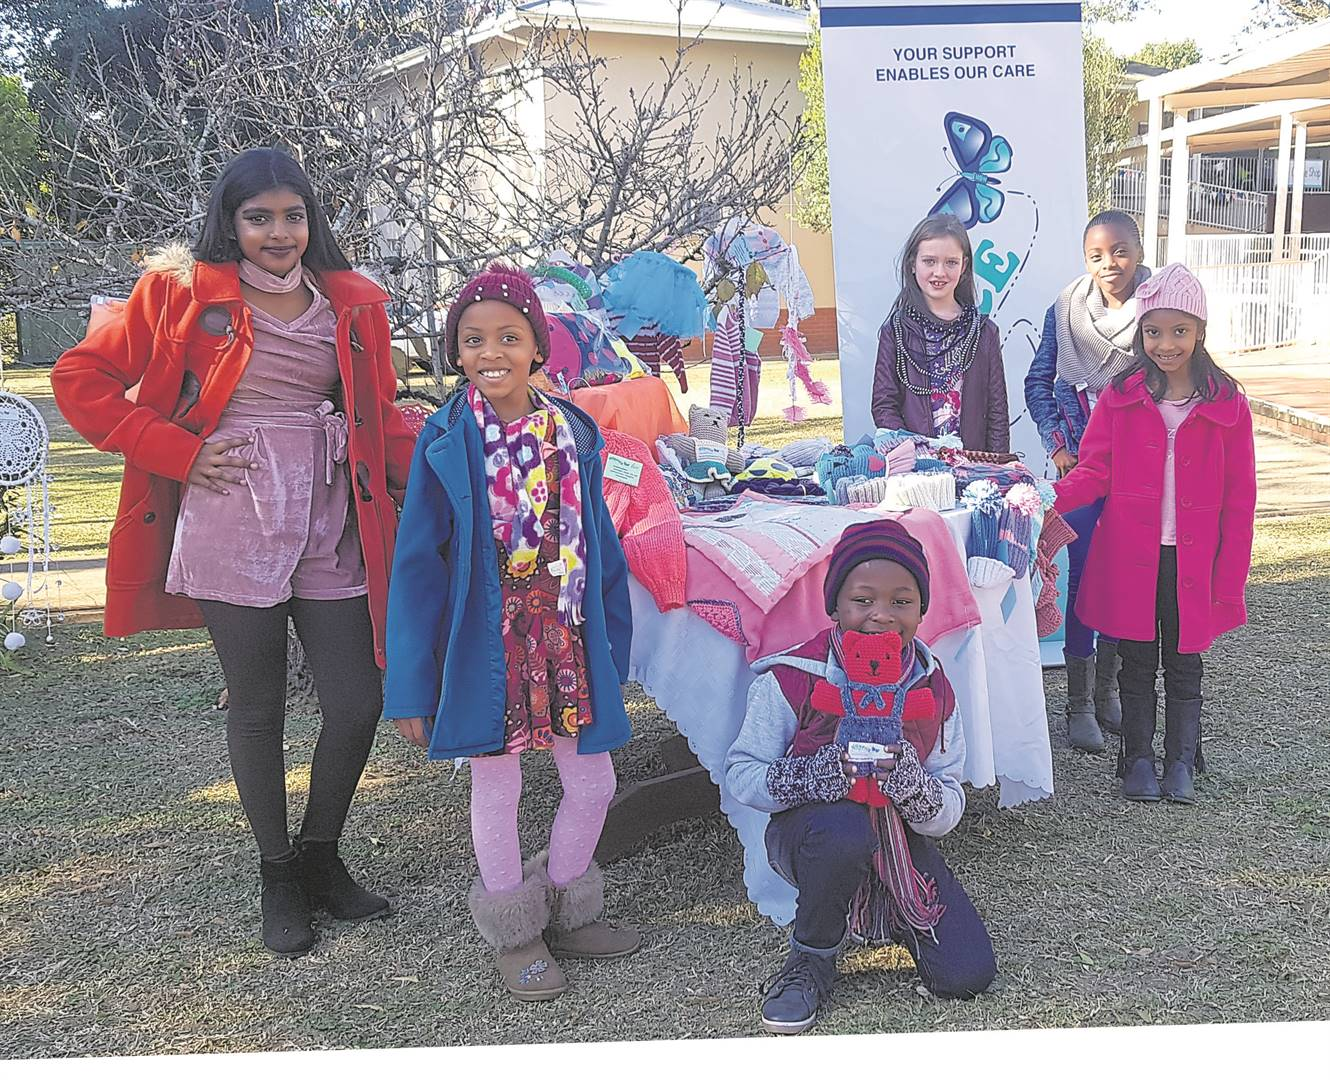 The Msunduzi Hospice Association will be hosting their annual Winter Fair on July 27 from 8 am to 1 pm. Various activities will be available for the enjoyment of children including a kids corner with fun and games, face painting, a jumping castle, a variety of stalls with handmade crafts on sale, among other things. Entry to the fair is R5 per person. For any queries please contact Tanya Roux at 033 344 1560 or 082 699 9105. Showing their support for the Winter Fair are Irene's Models pupils (from left) Diya Ramchander, Andiswa Phewa, Sonwabile Jili, Prisha Padayachee, Noluthando Phewa, and Julie-Anna Sparrow. PHOTO: byrone athman